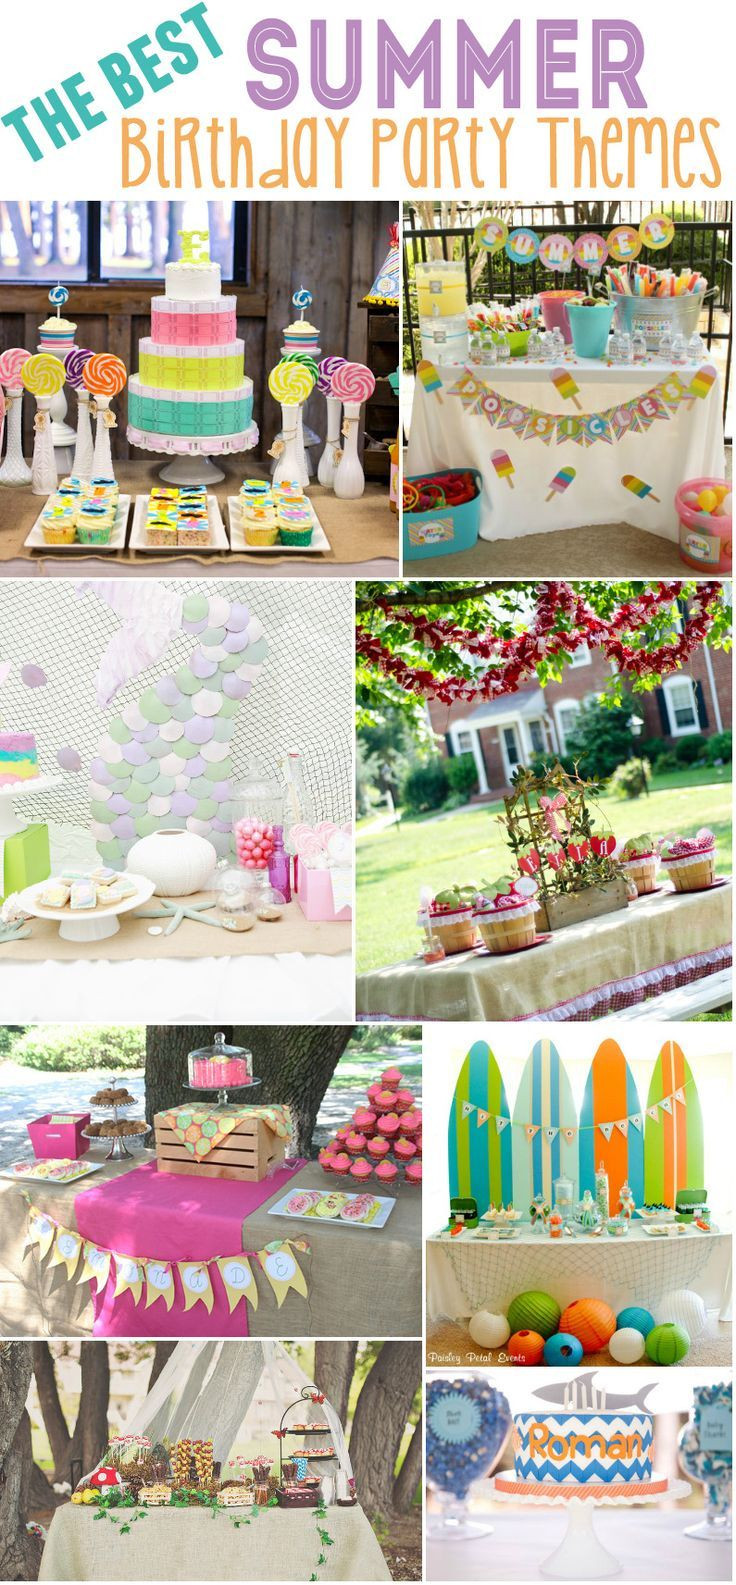 15 Year Old Birthday Party Ideas Summer  15 Best Summer Birthday Party Themes